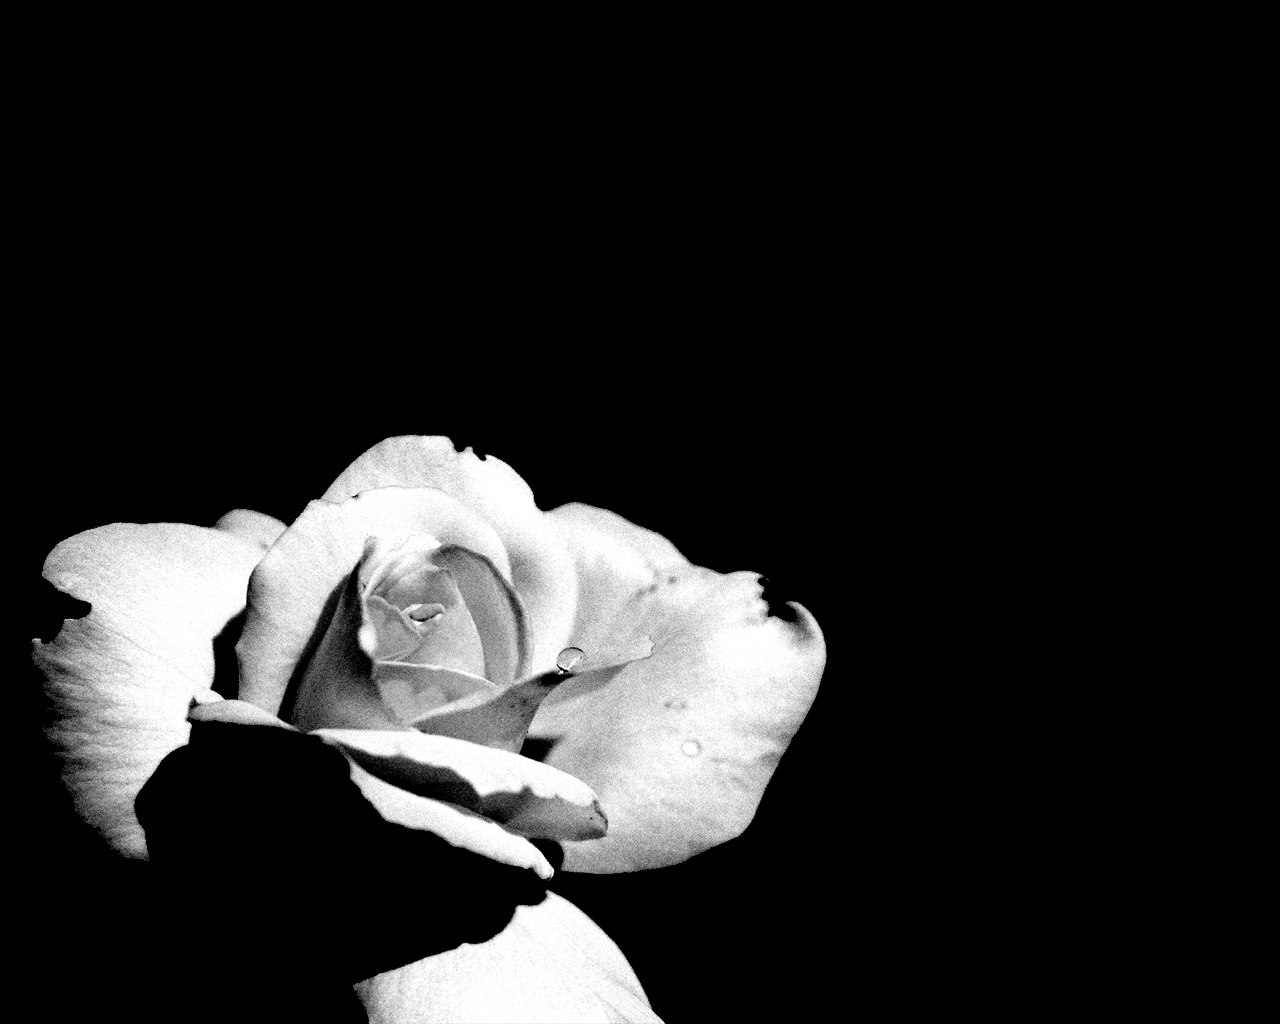 Black And White Flowers Wallpaper 7 Hd Wallpaper Hdflowerwallpaper